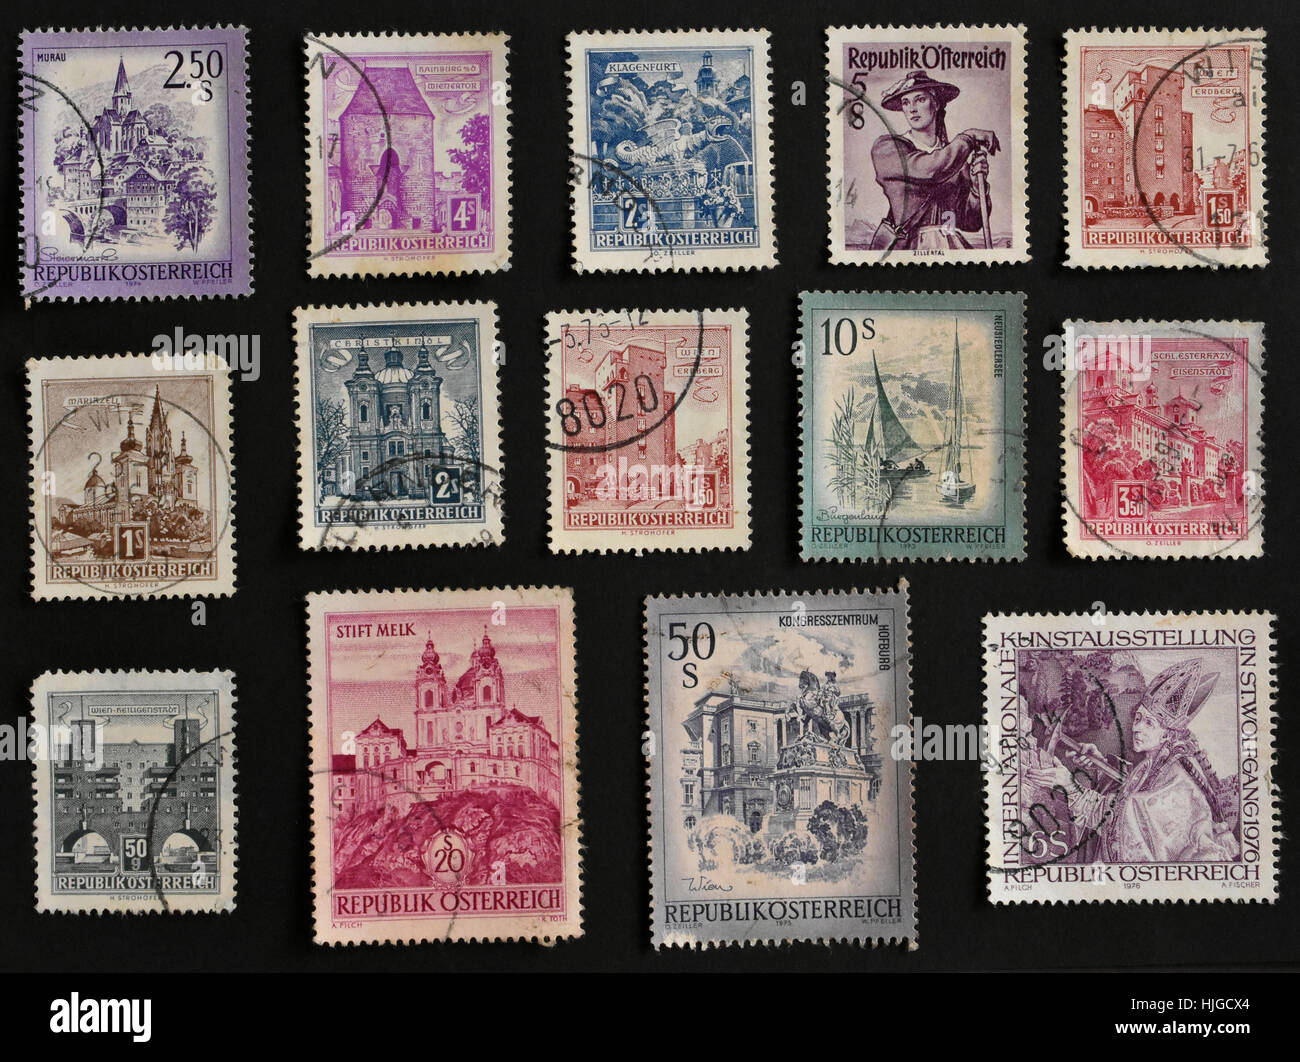 Postal stamps of Republik Osterreich - Stock Image